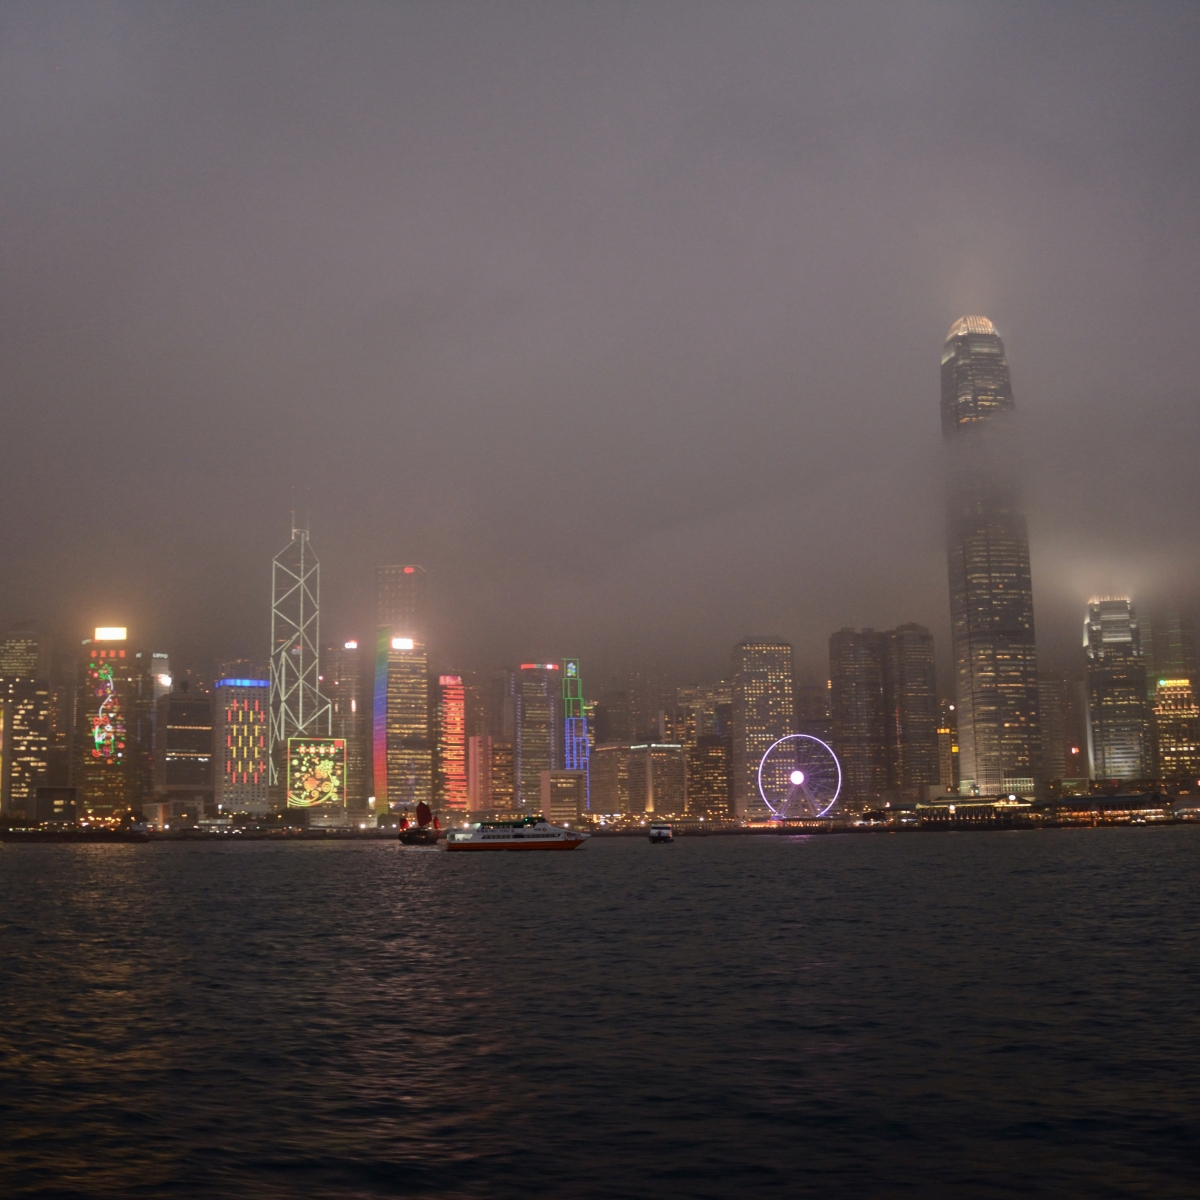 Kowloon, Hong Kong | Afternoon Tea at the Ritz and a Ride on the Star Ferry atNight